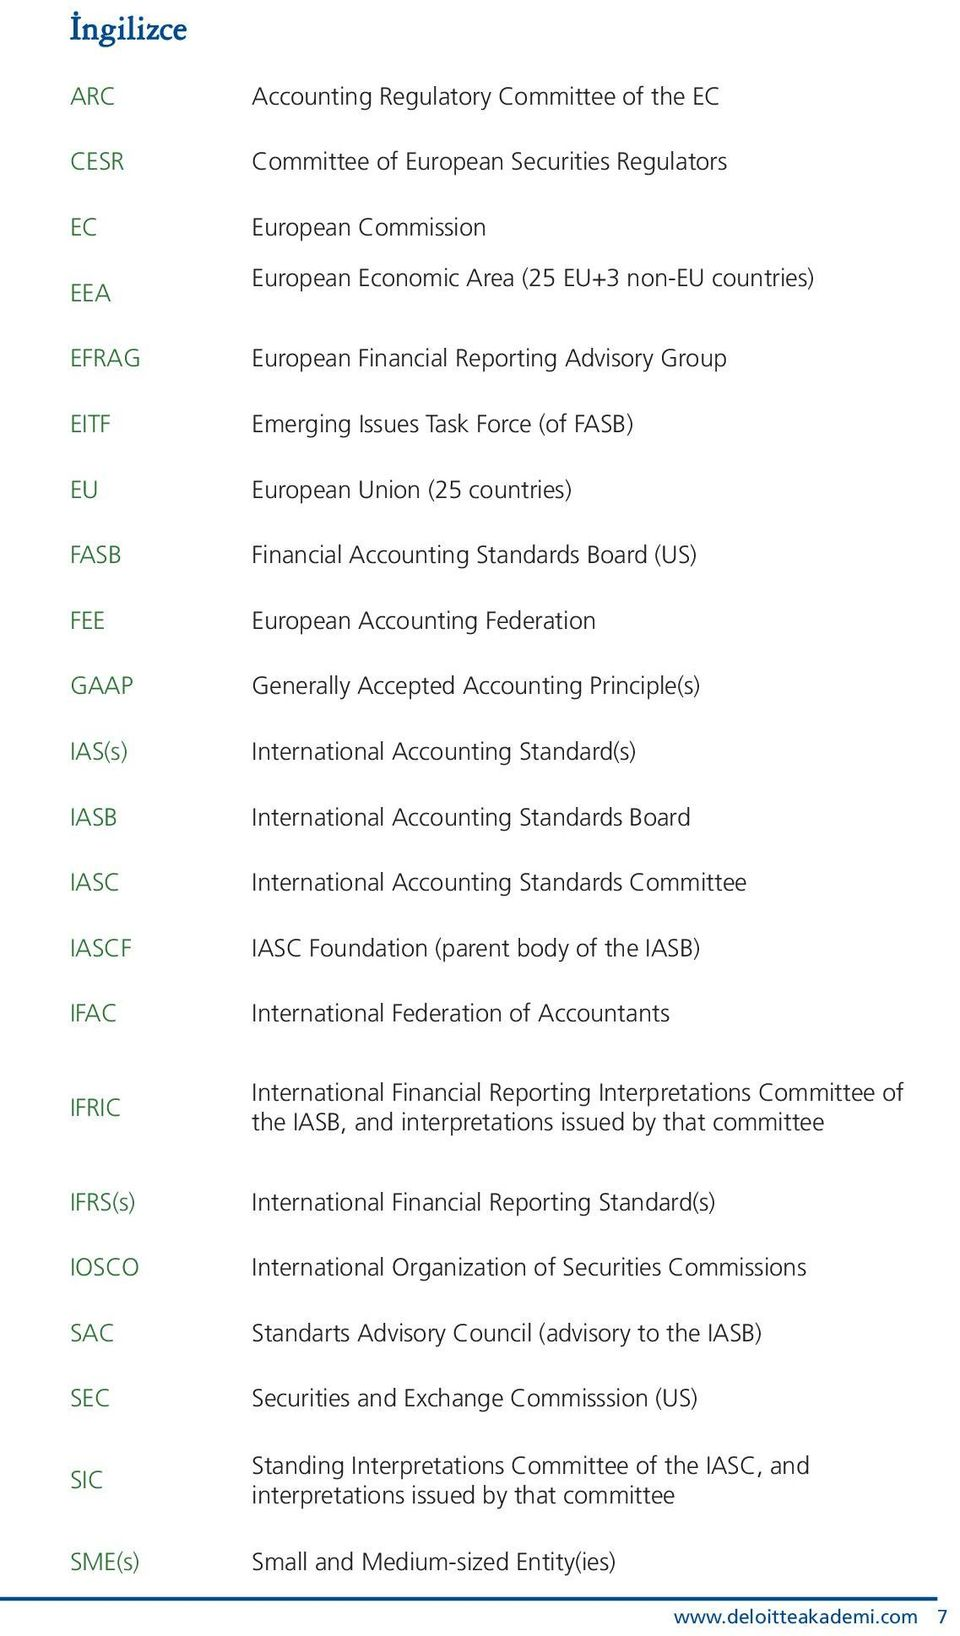 European Accounting Federation Generally Accepted Accounting Principle(s) International Accounting Standard(s) International Accounting Standards Board International Accounting Standards Committee